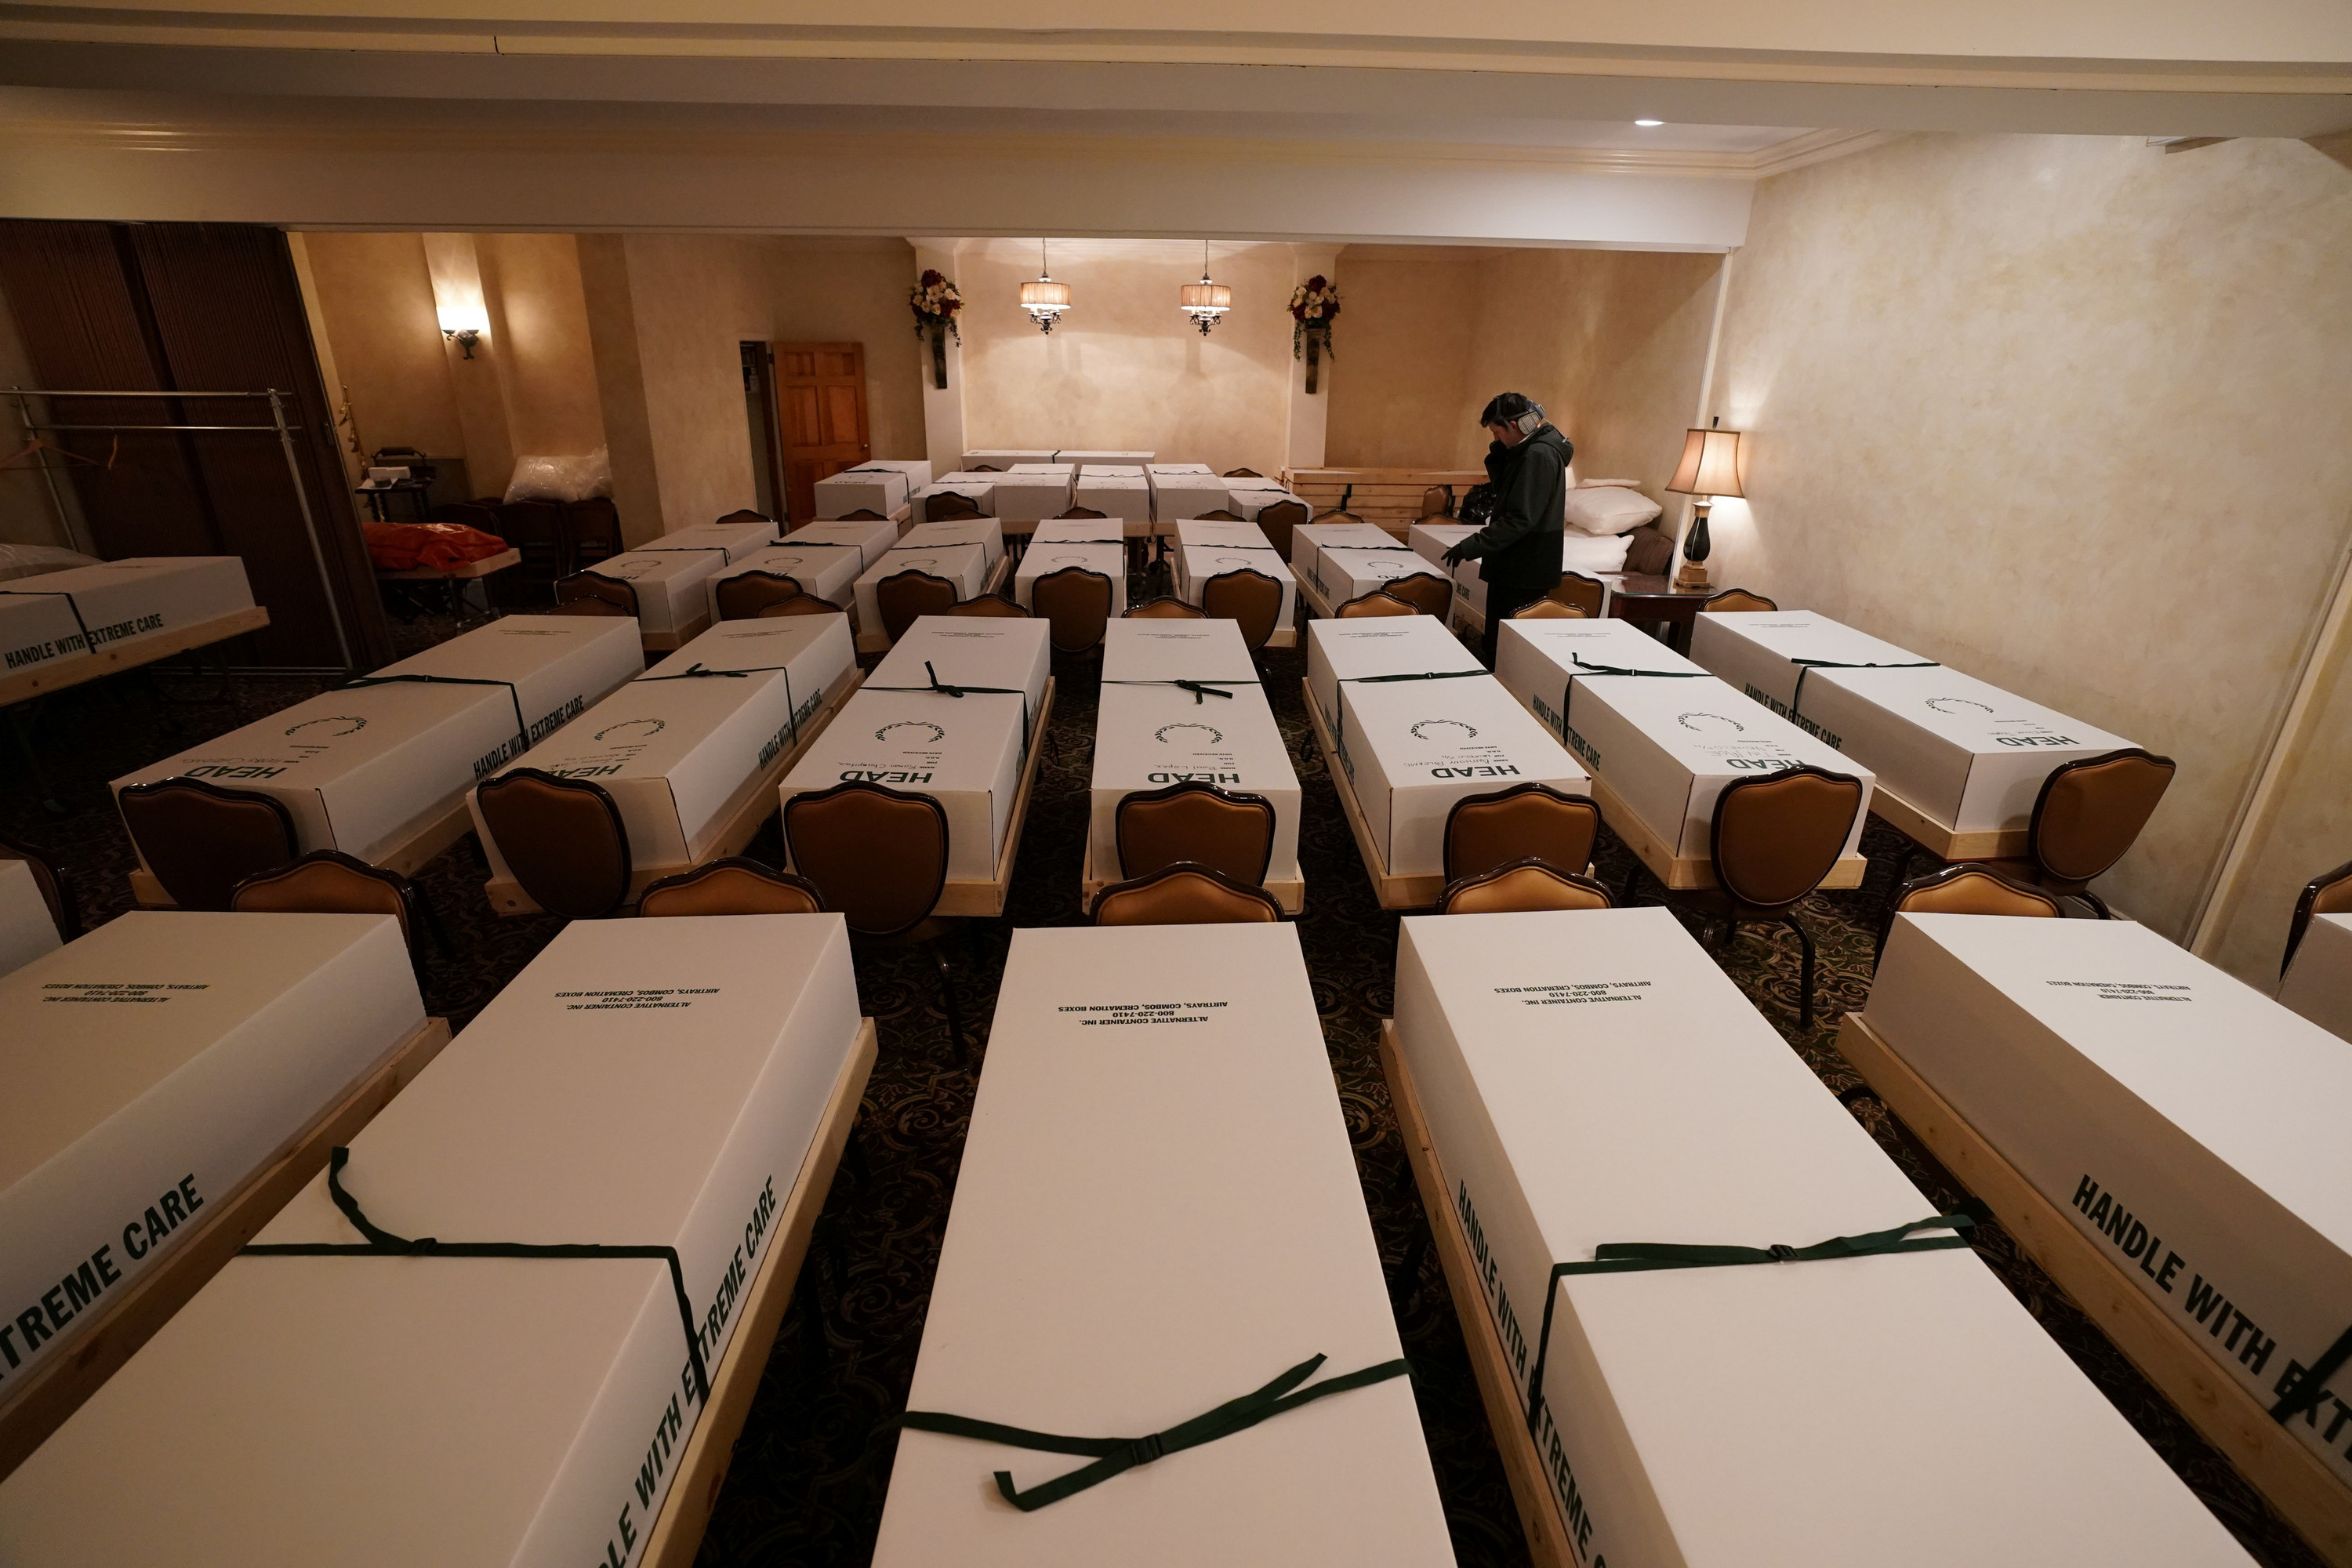 A camera overlooks multiple rows of caskets that rest on chairs inside a funeral home as one man stands in the middle of them